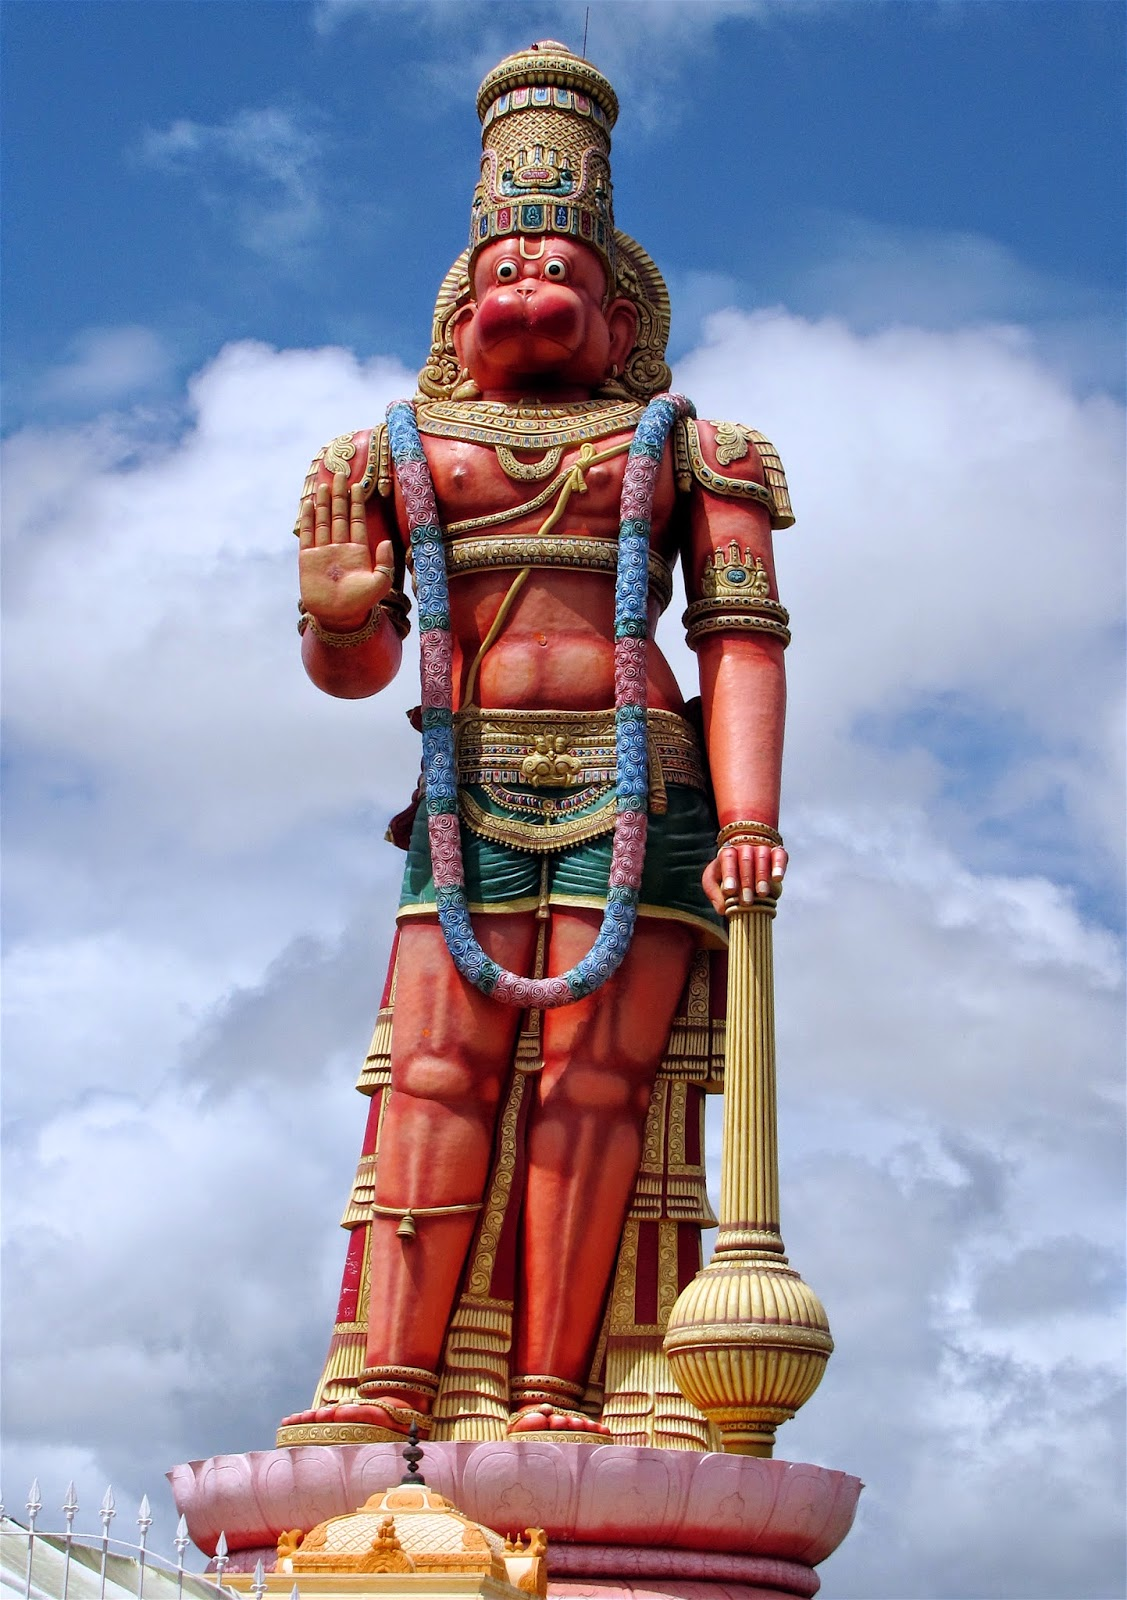 An incredible Lord Hanuman 85 feet tall statue of Trinidad.